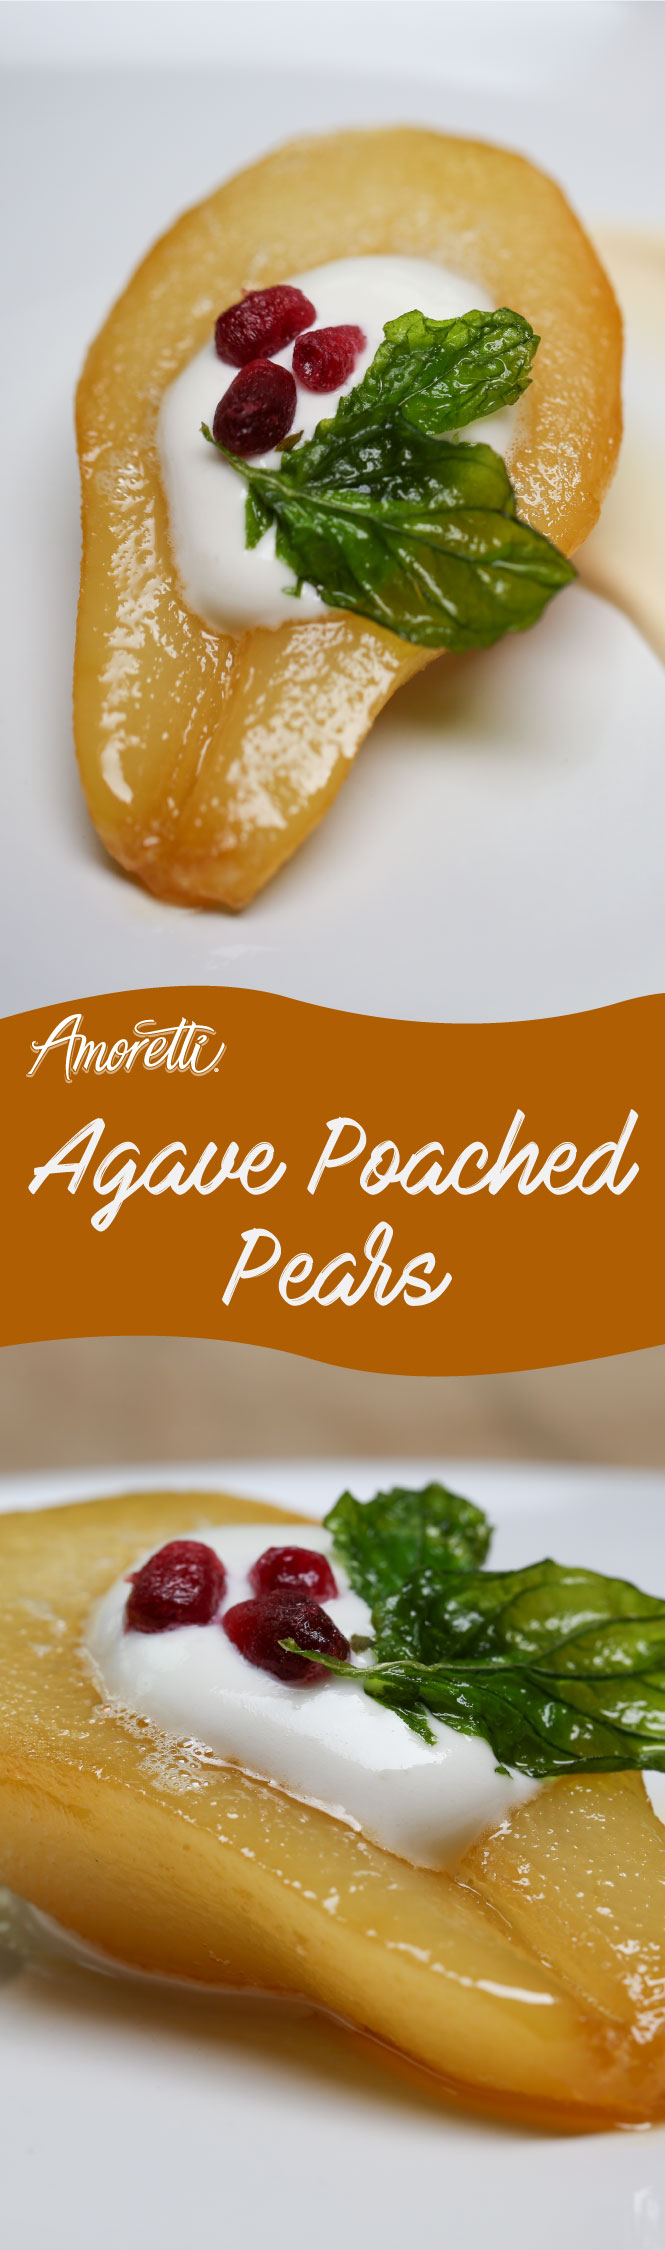 Amoretti Agave Poached Pears: Enjoy this delightfully light dessert after a filling meal!